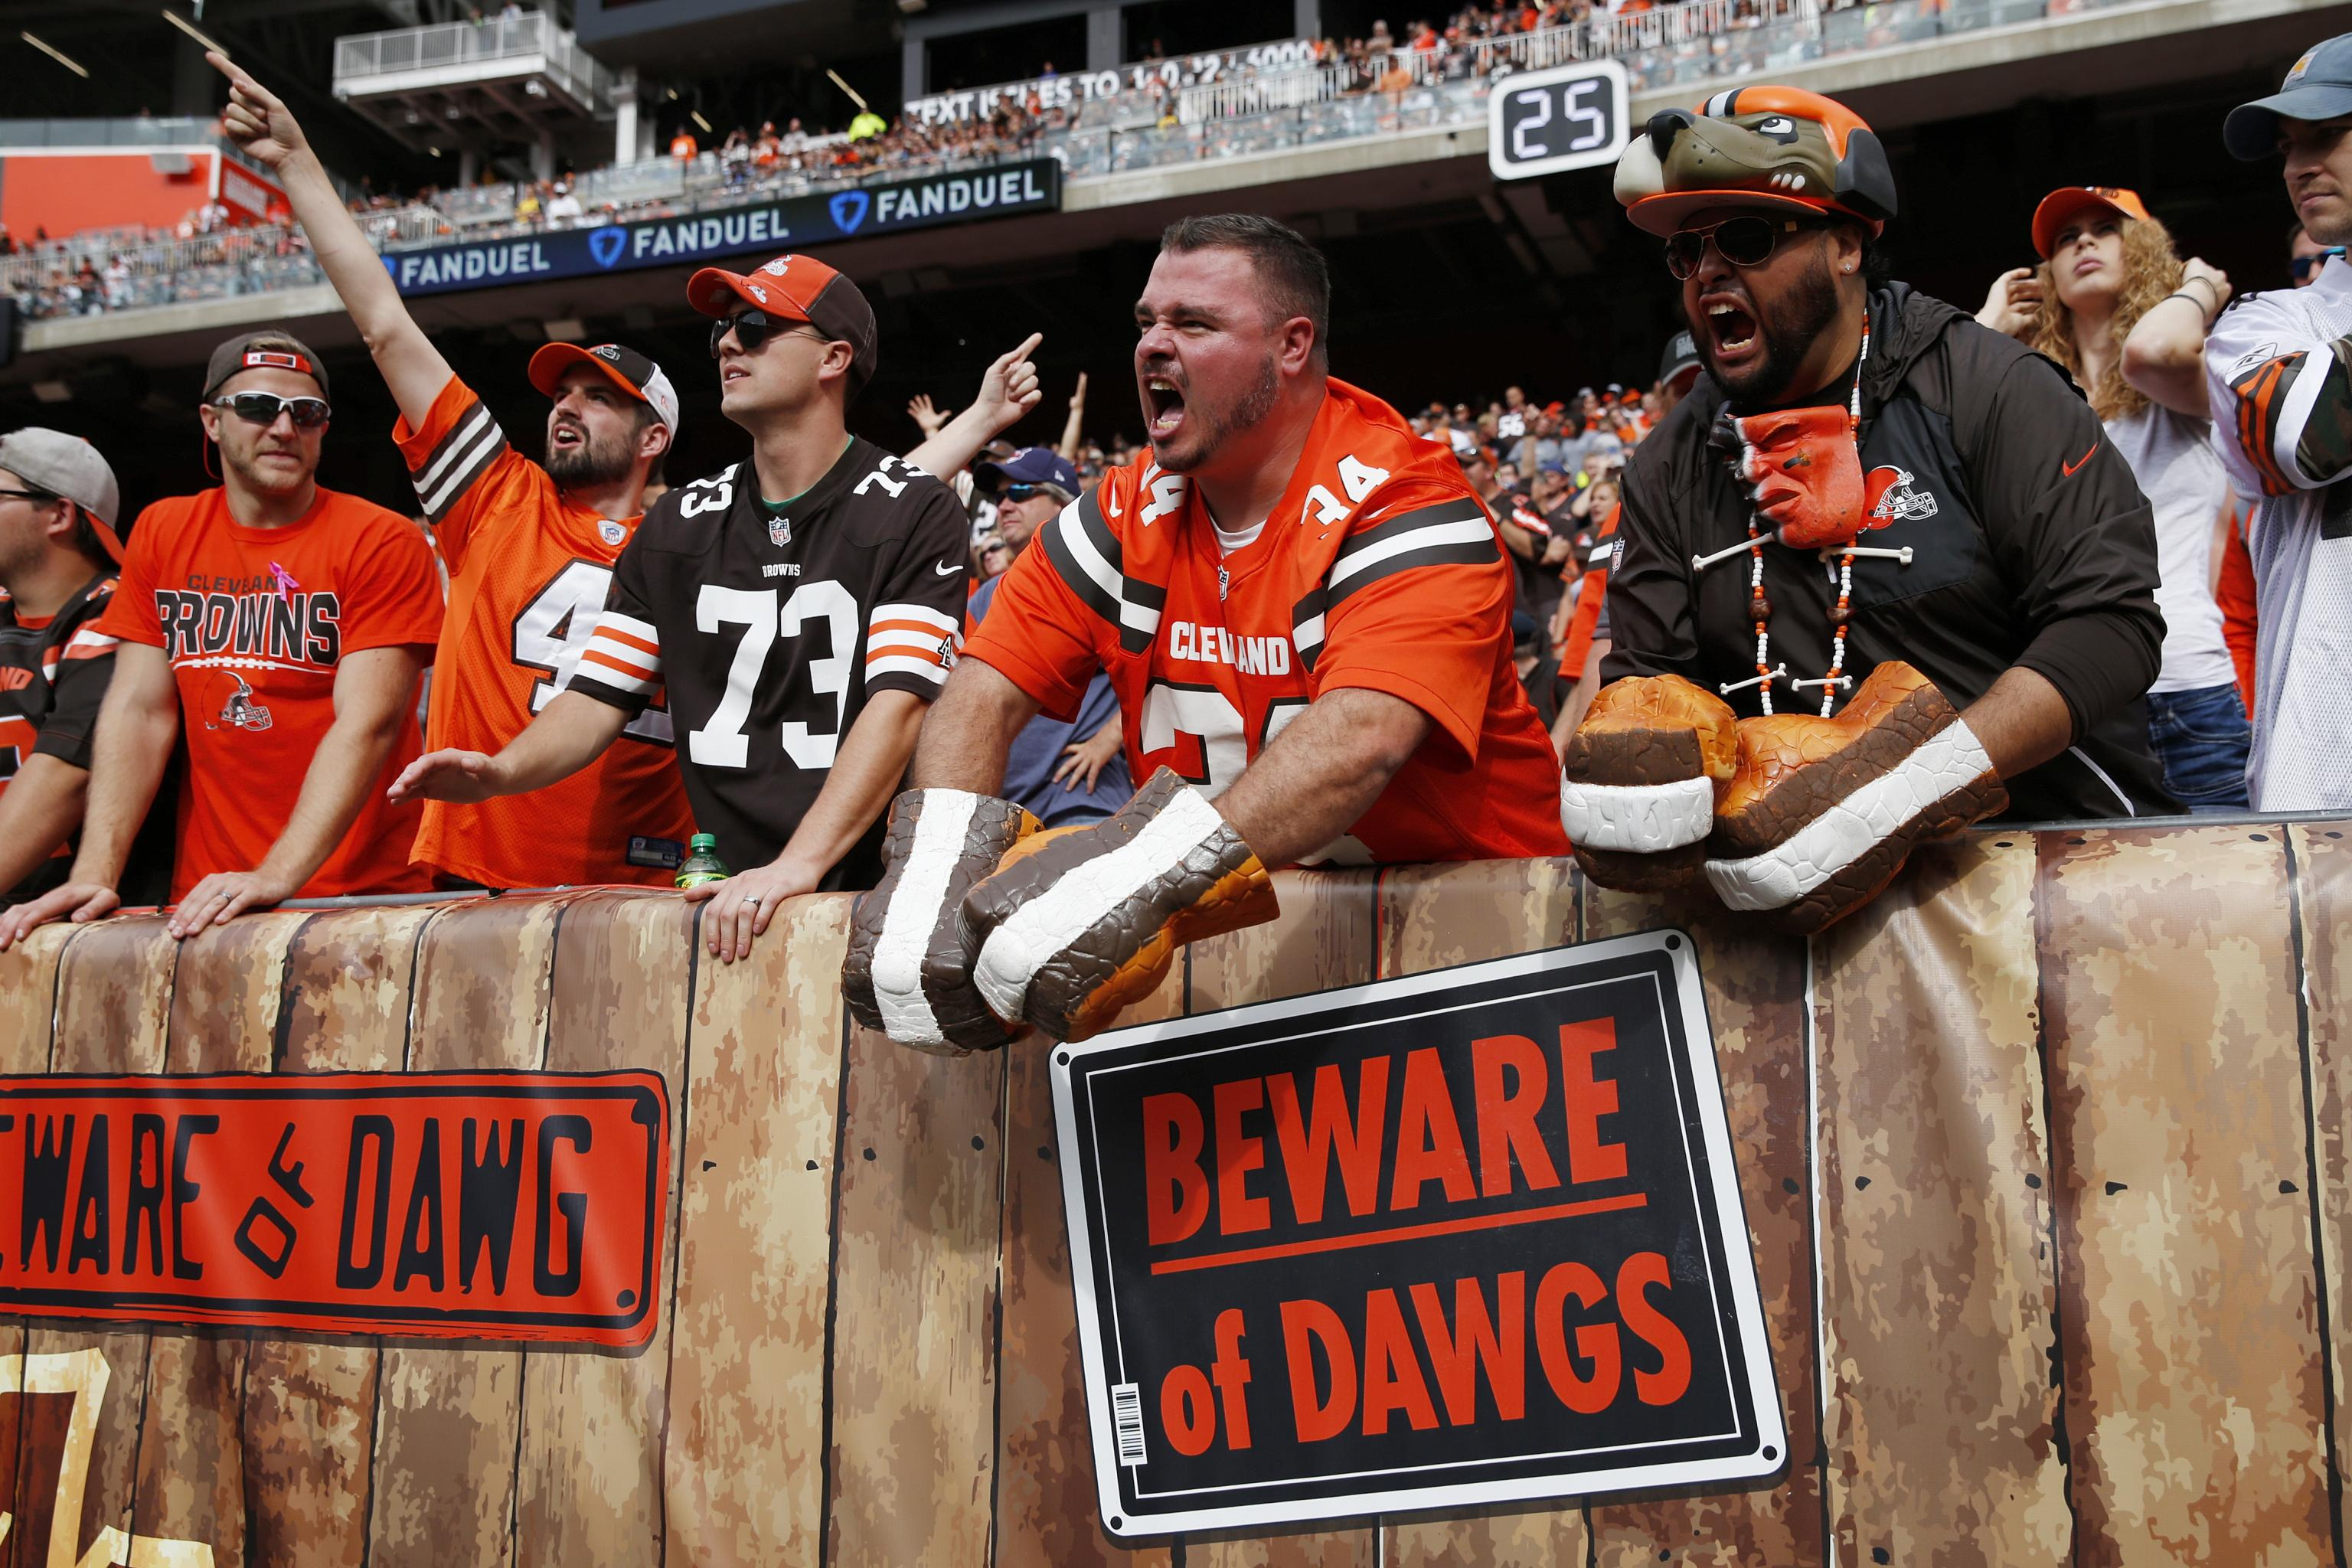 Bud Light to Provide Fans with Celebratory Beer When Browns